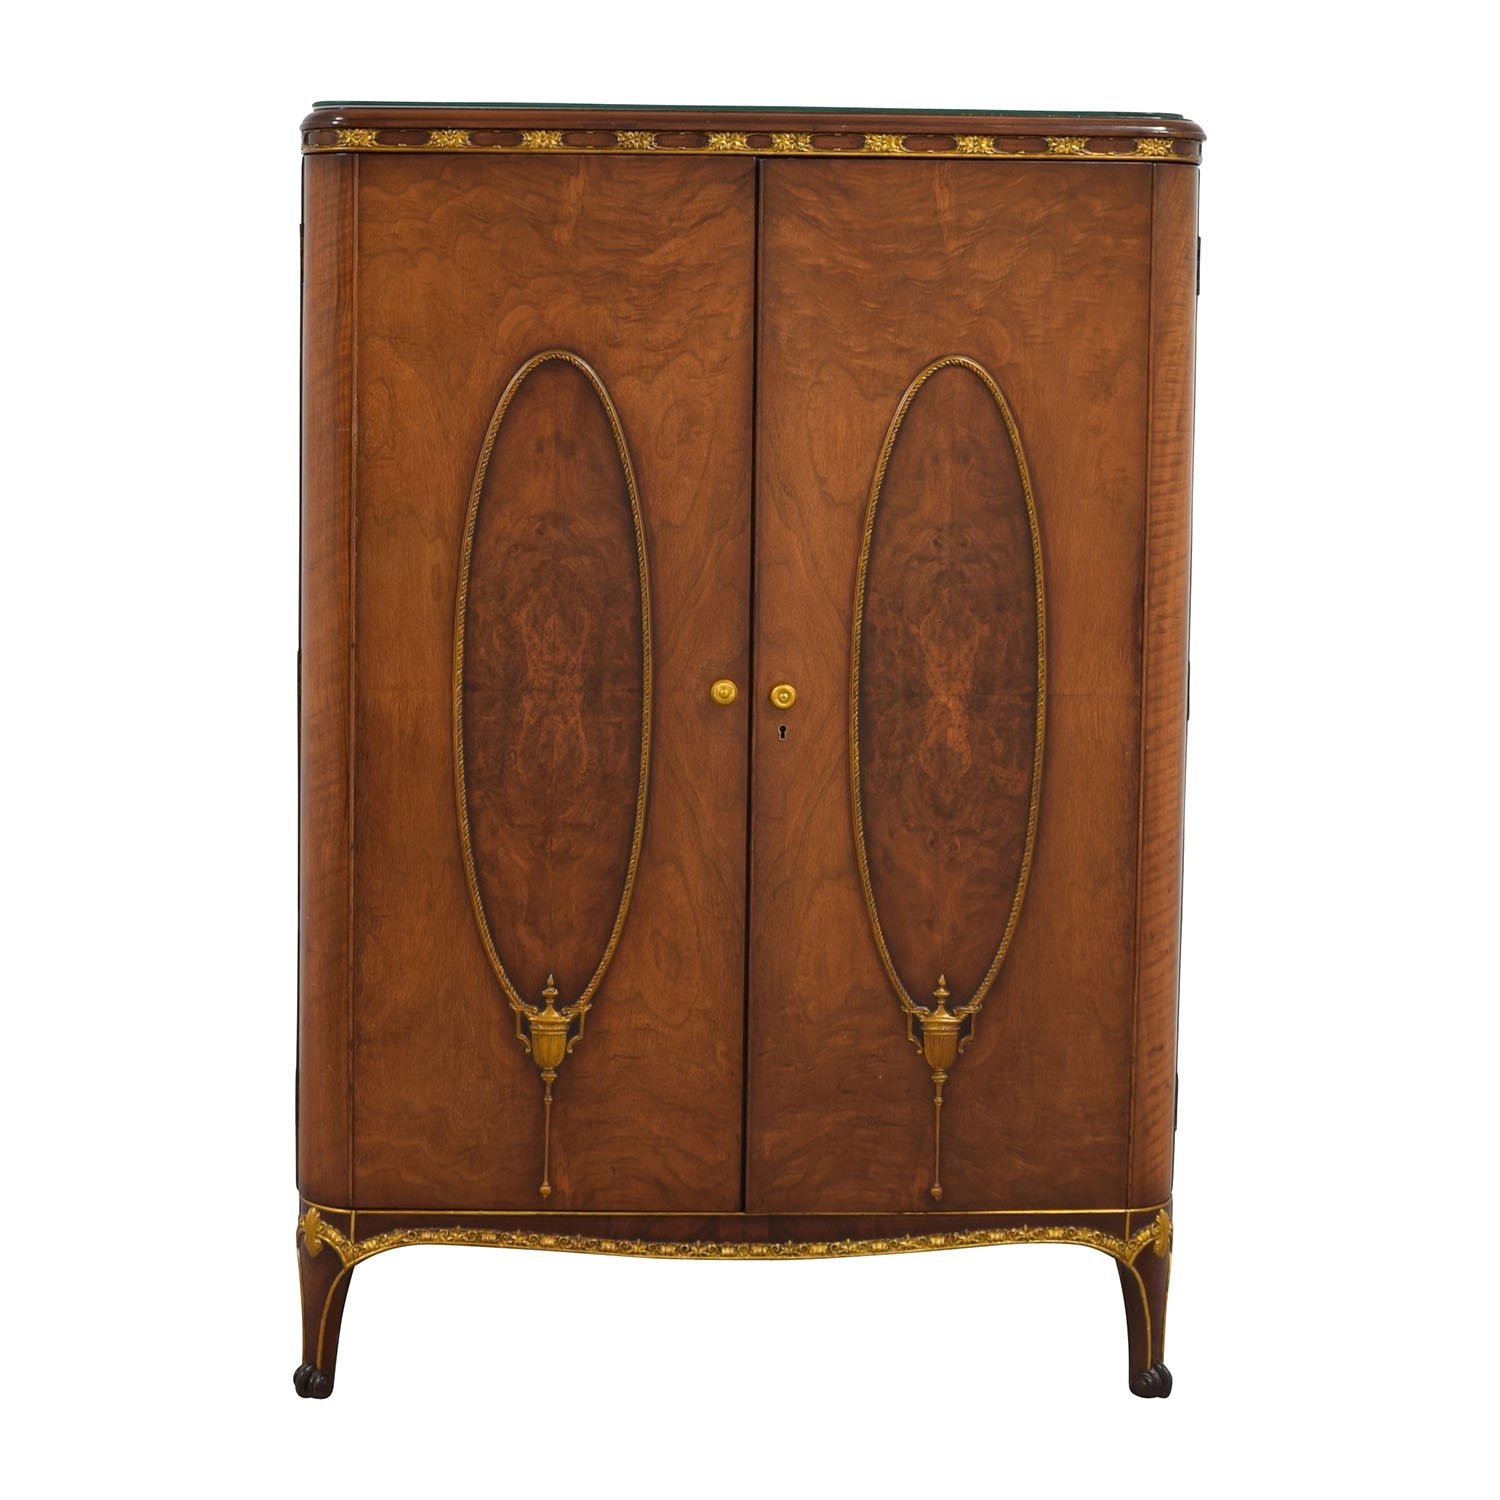 buy Antique Wardrobe with Gold Trim